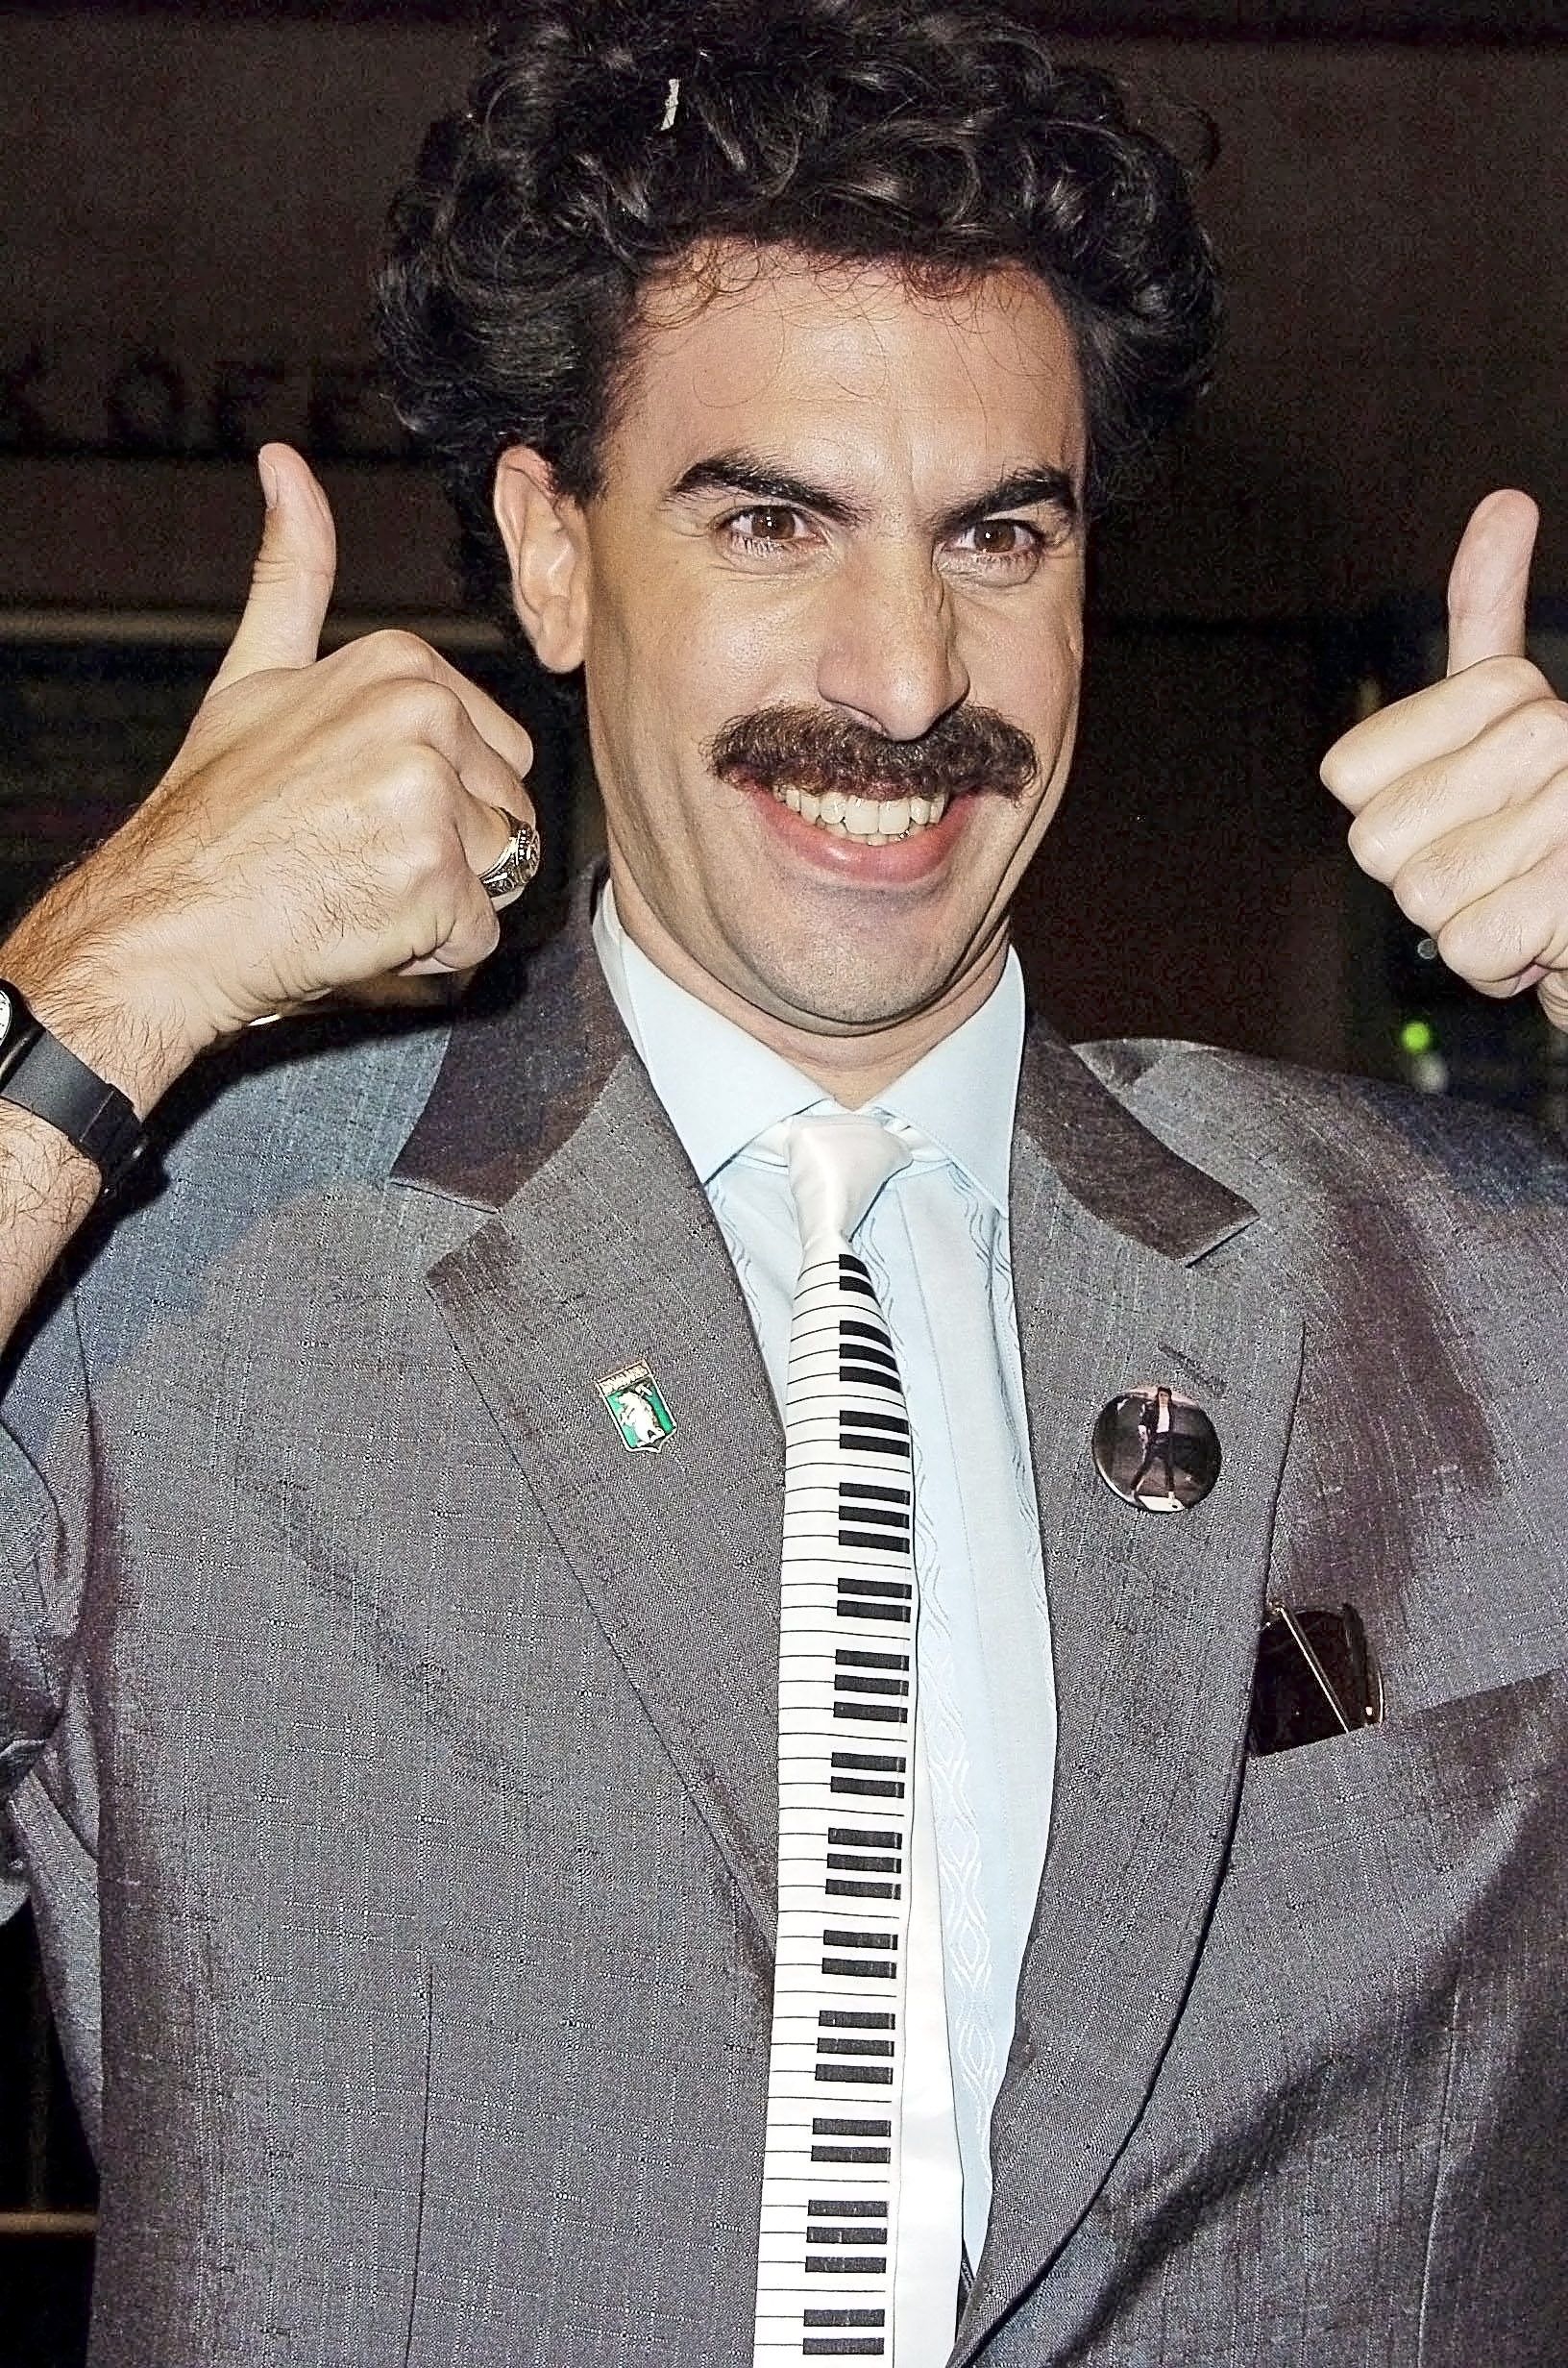 Borat Subsequent Moviefilm another 'great success' for Sacha Baron Cohen